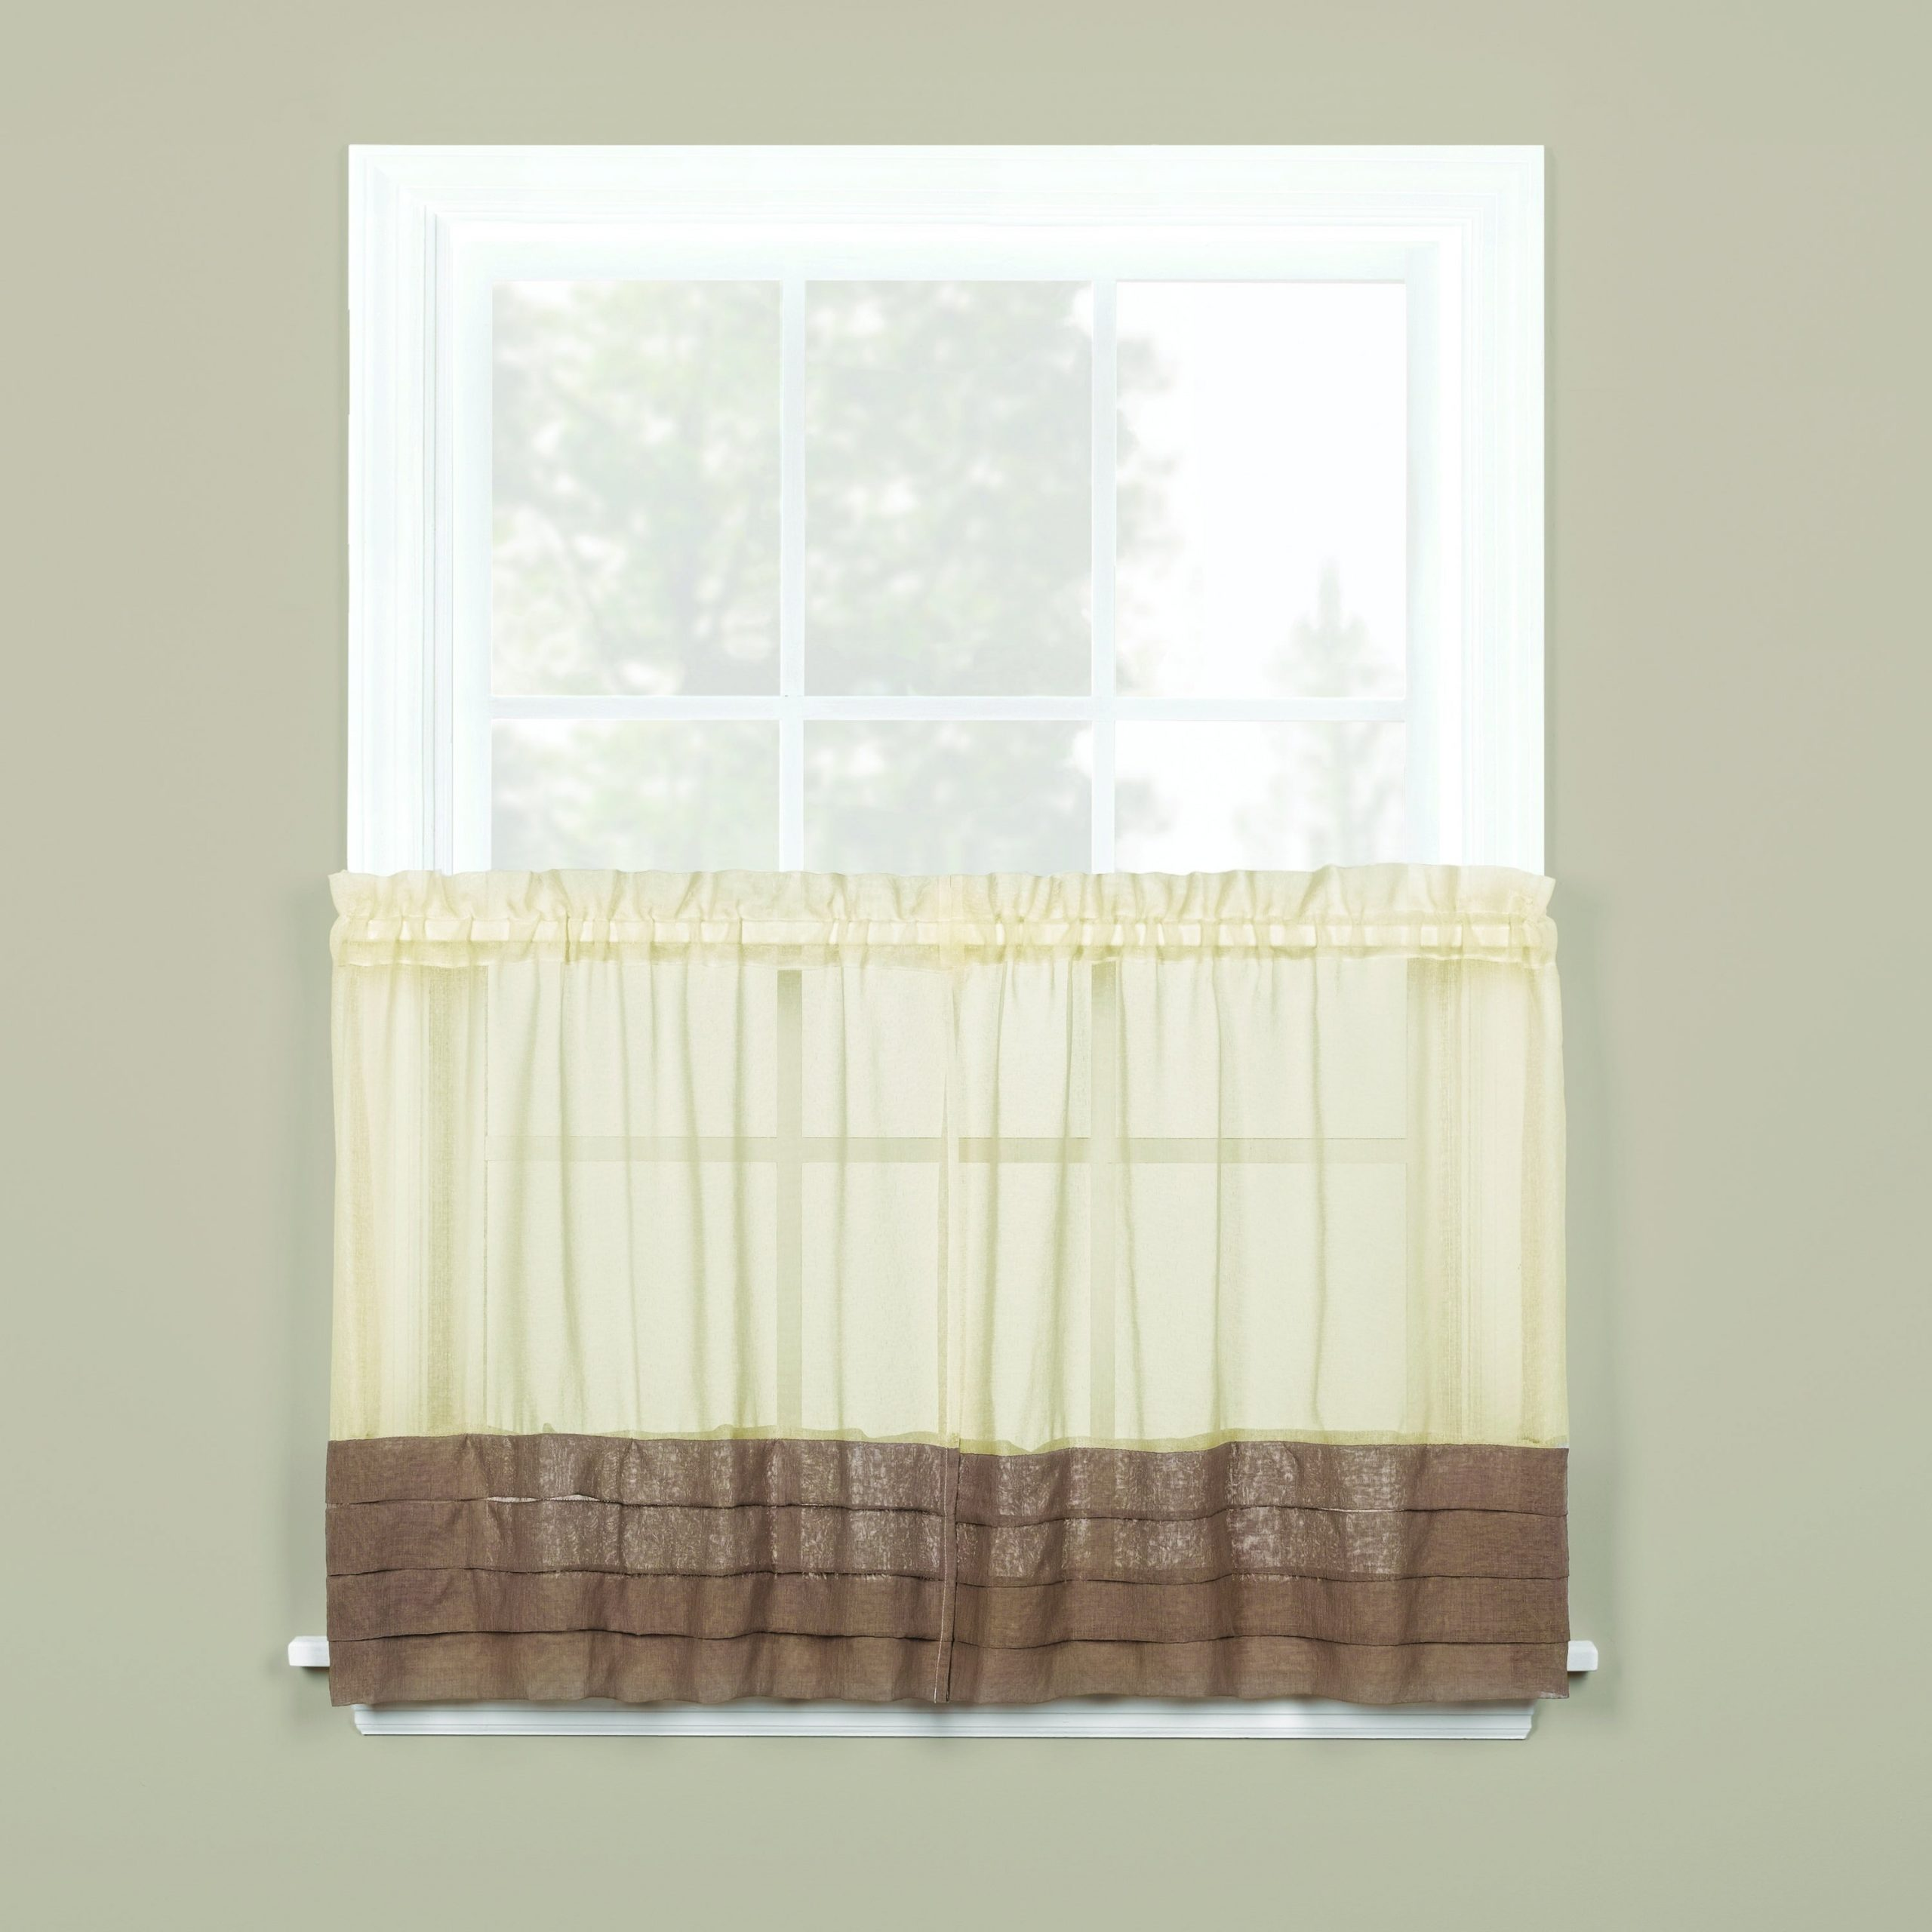 Skl Home Cielo 24 Inch Tier Pair In Brown/cream Within Touch Of Spring 24 Inch Tier Pairs (View 6 of 20)